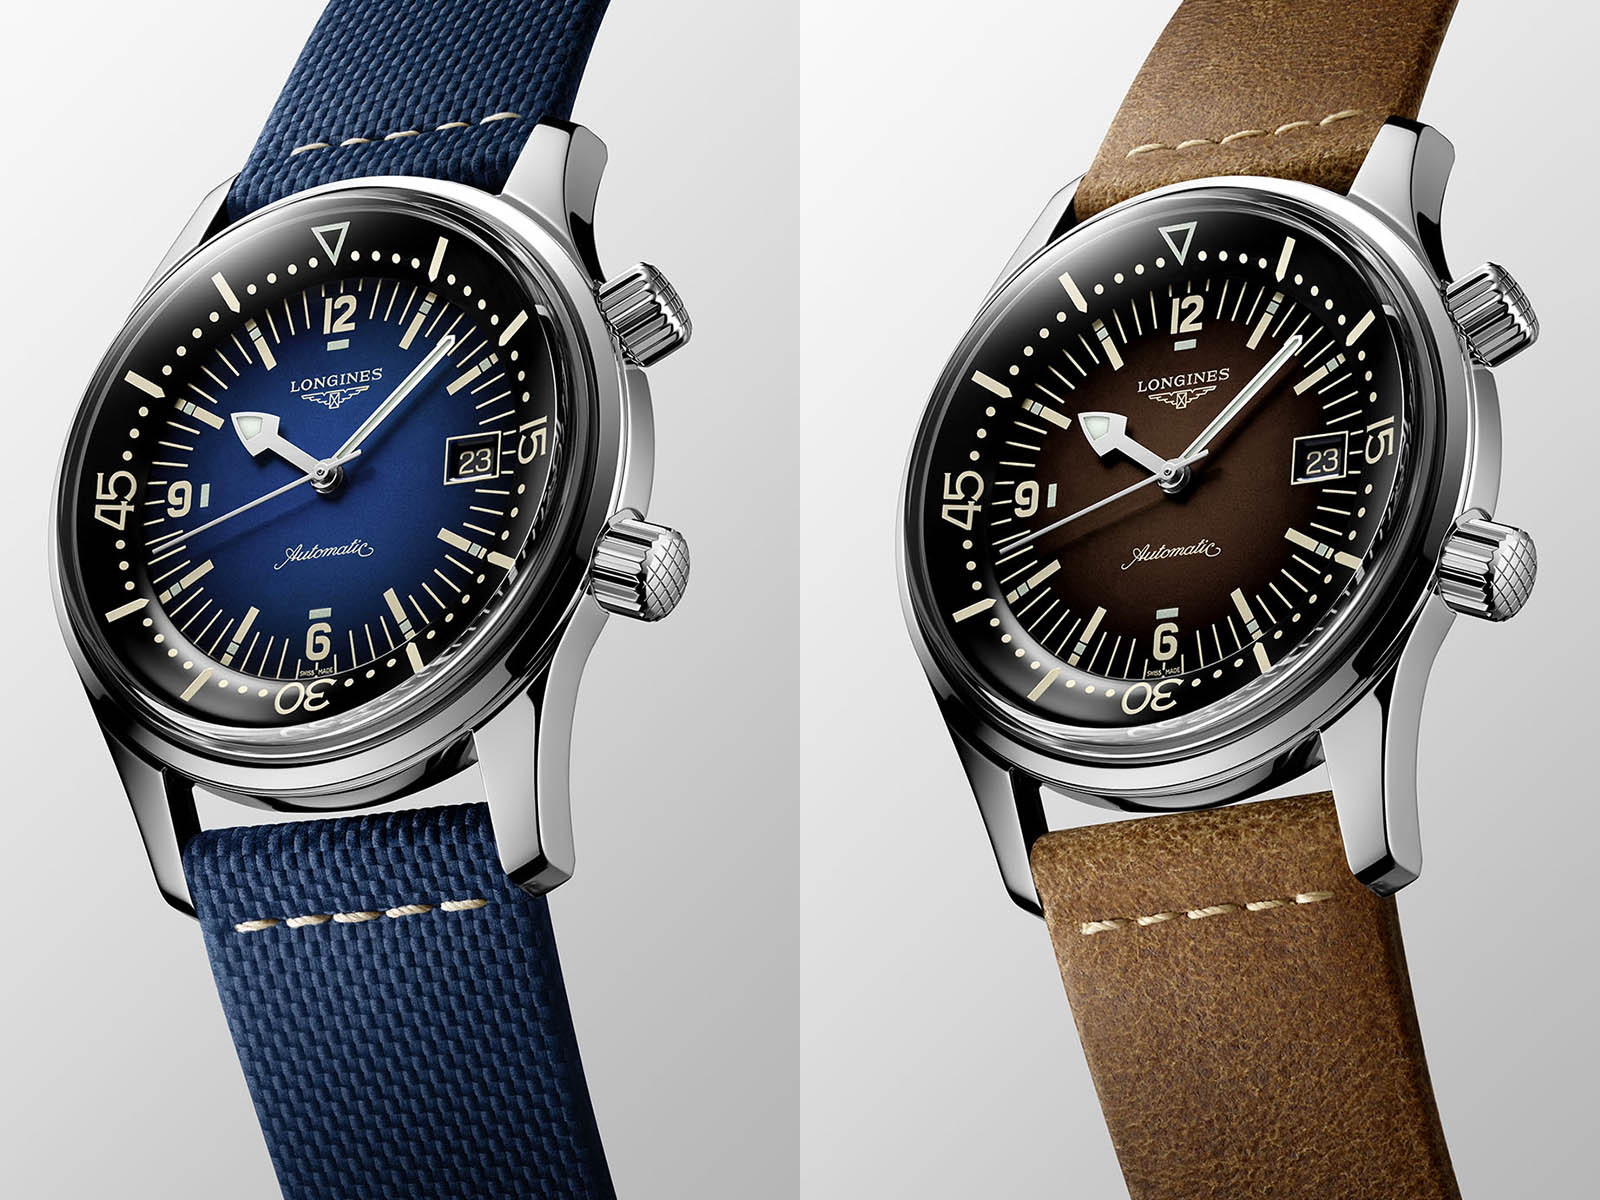 longines-legend-diver-new-dial-colors-1.jpg